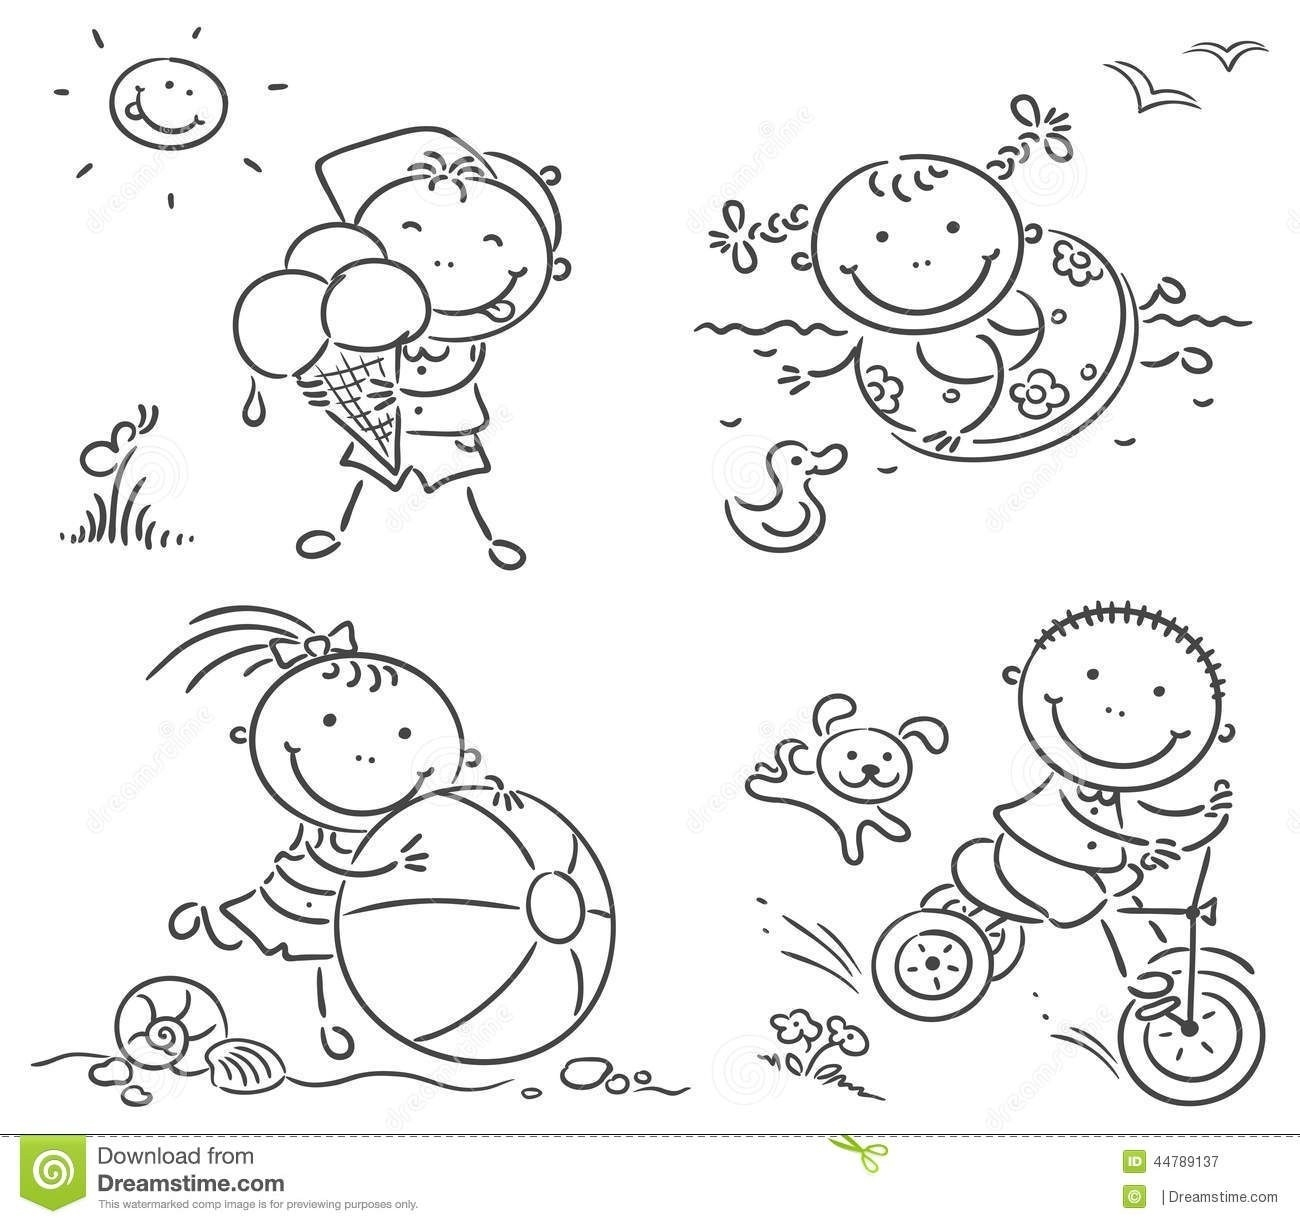 Children playing outside clipartuse. Activities clipart black and white